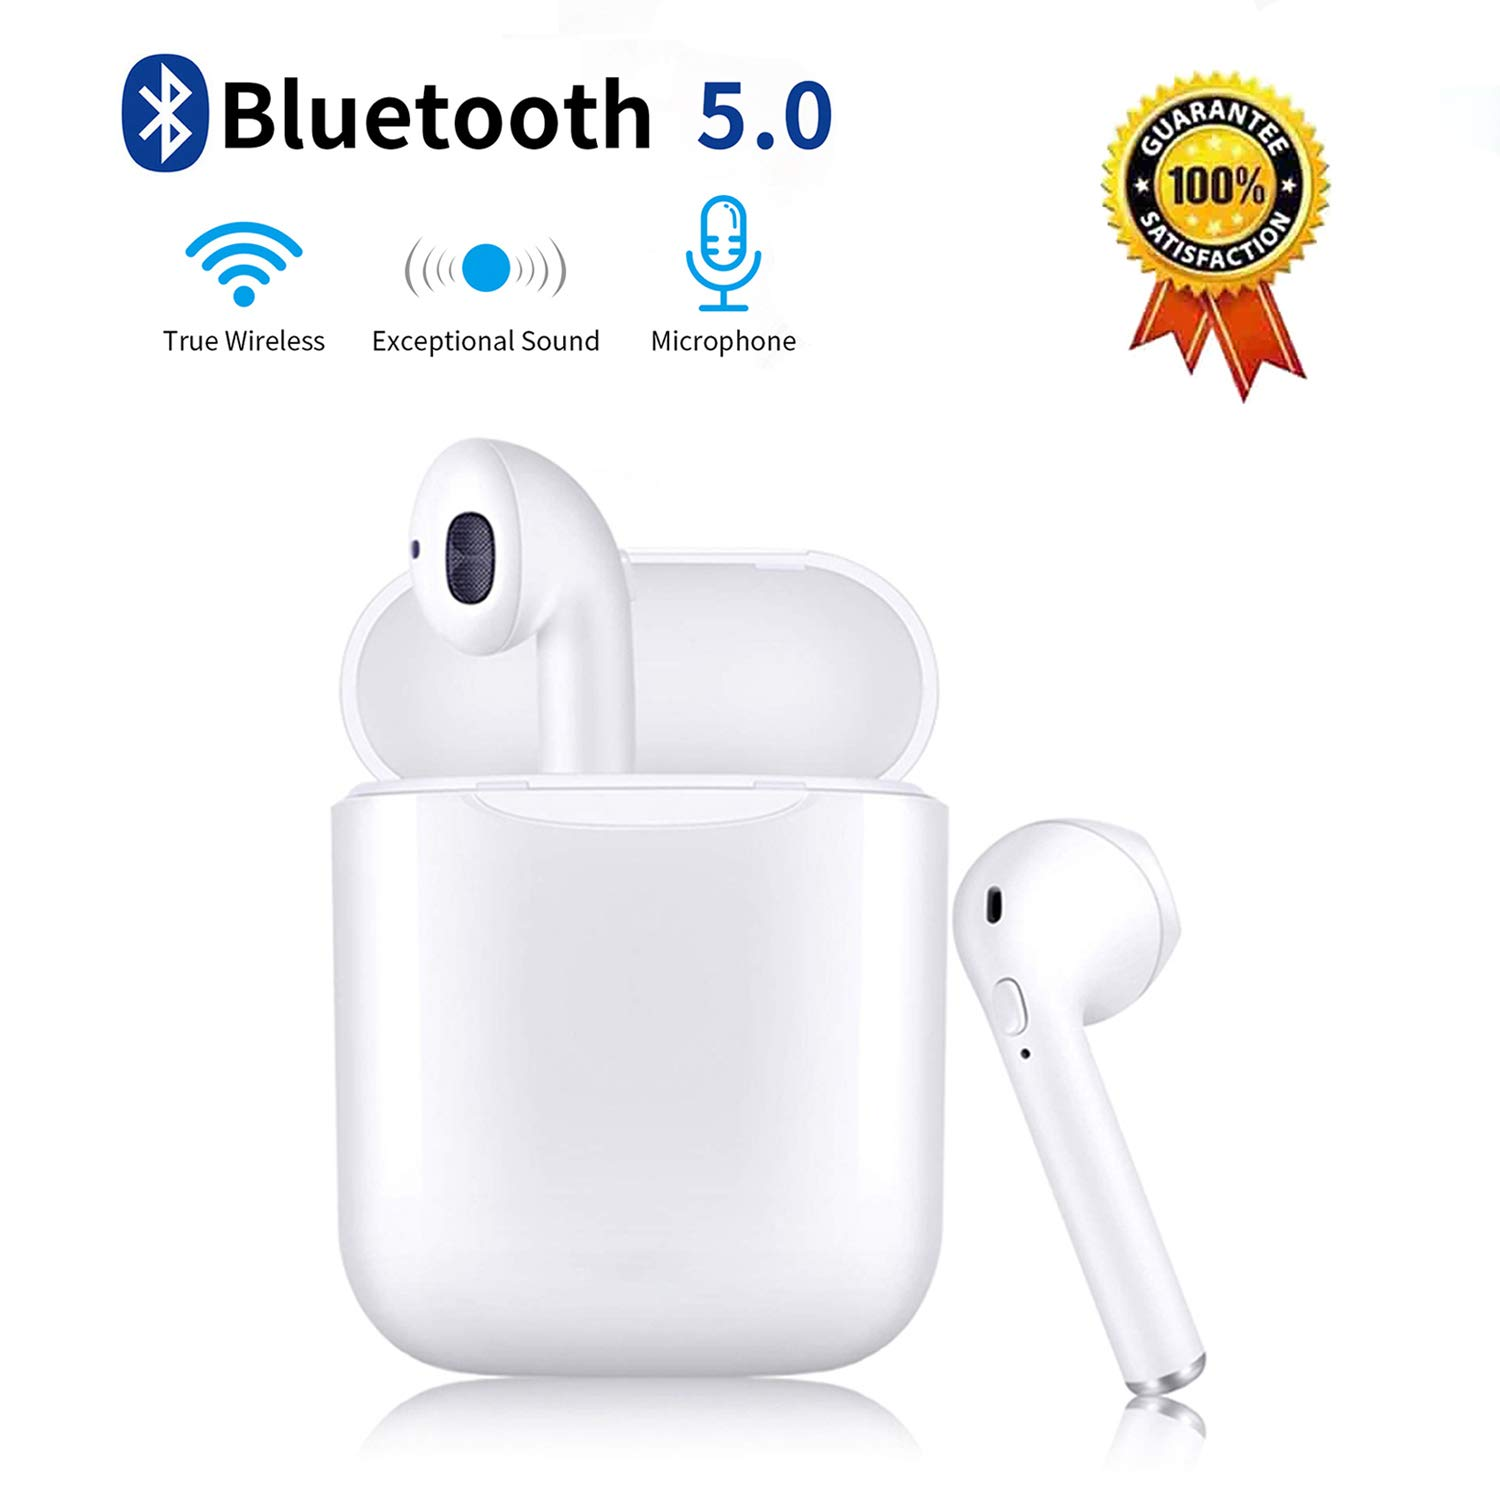 Wireless Earbuds Bluetooth 5.0 Earphones with Charging Case Noise Canceling Sports Earphones IPX5 Waterproof in-Ear Built-in Mic Headset for iPhone Android Apple Airpods